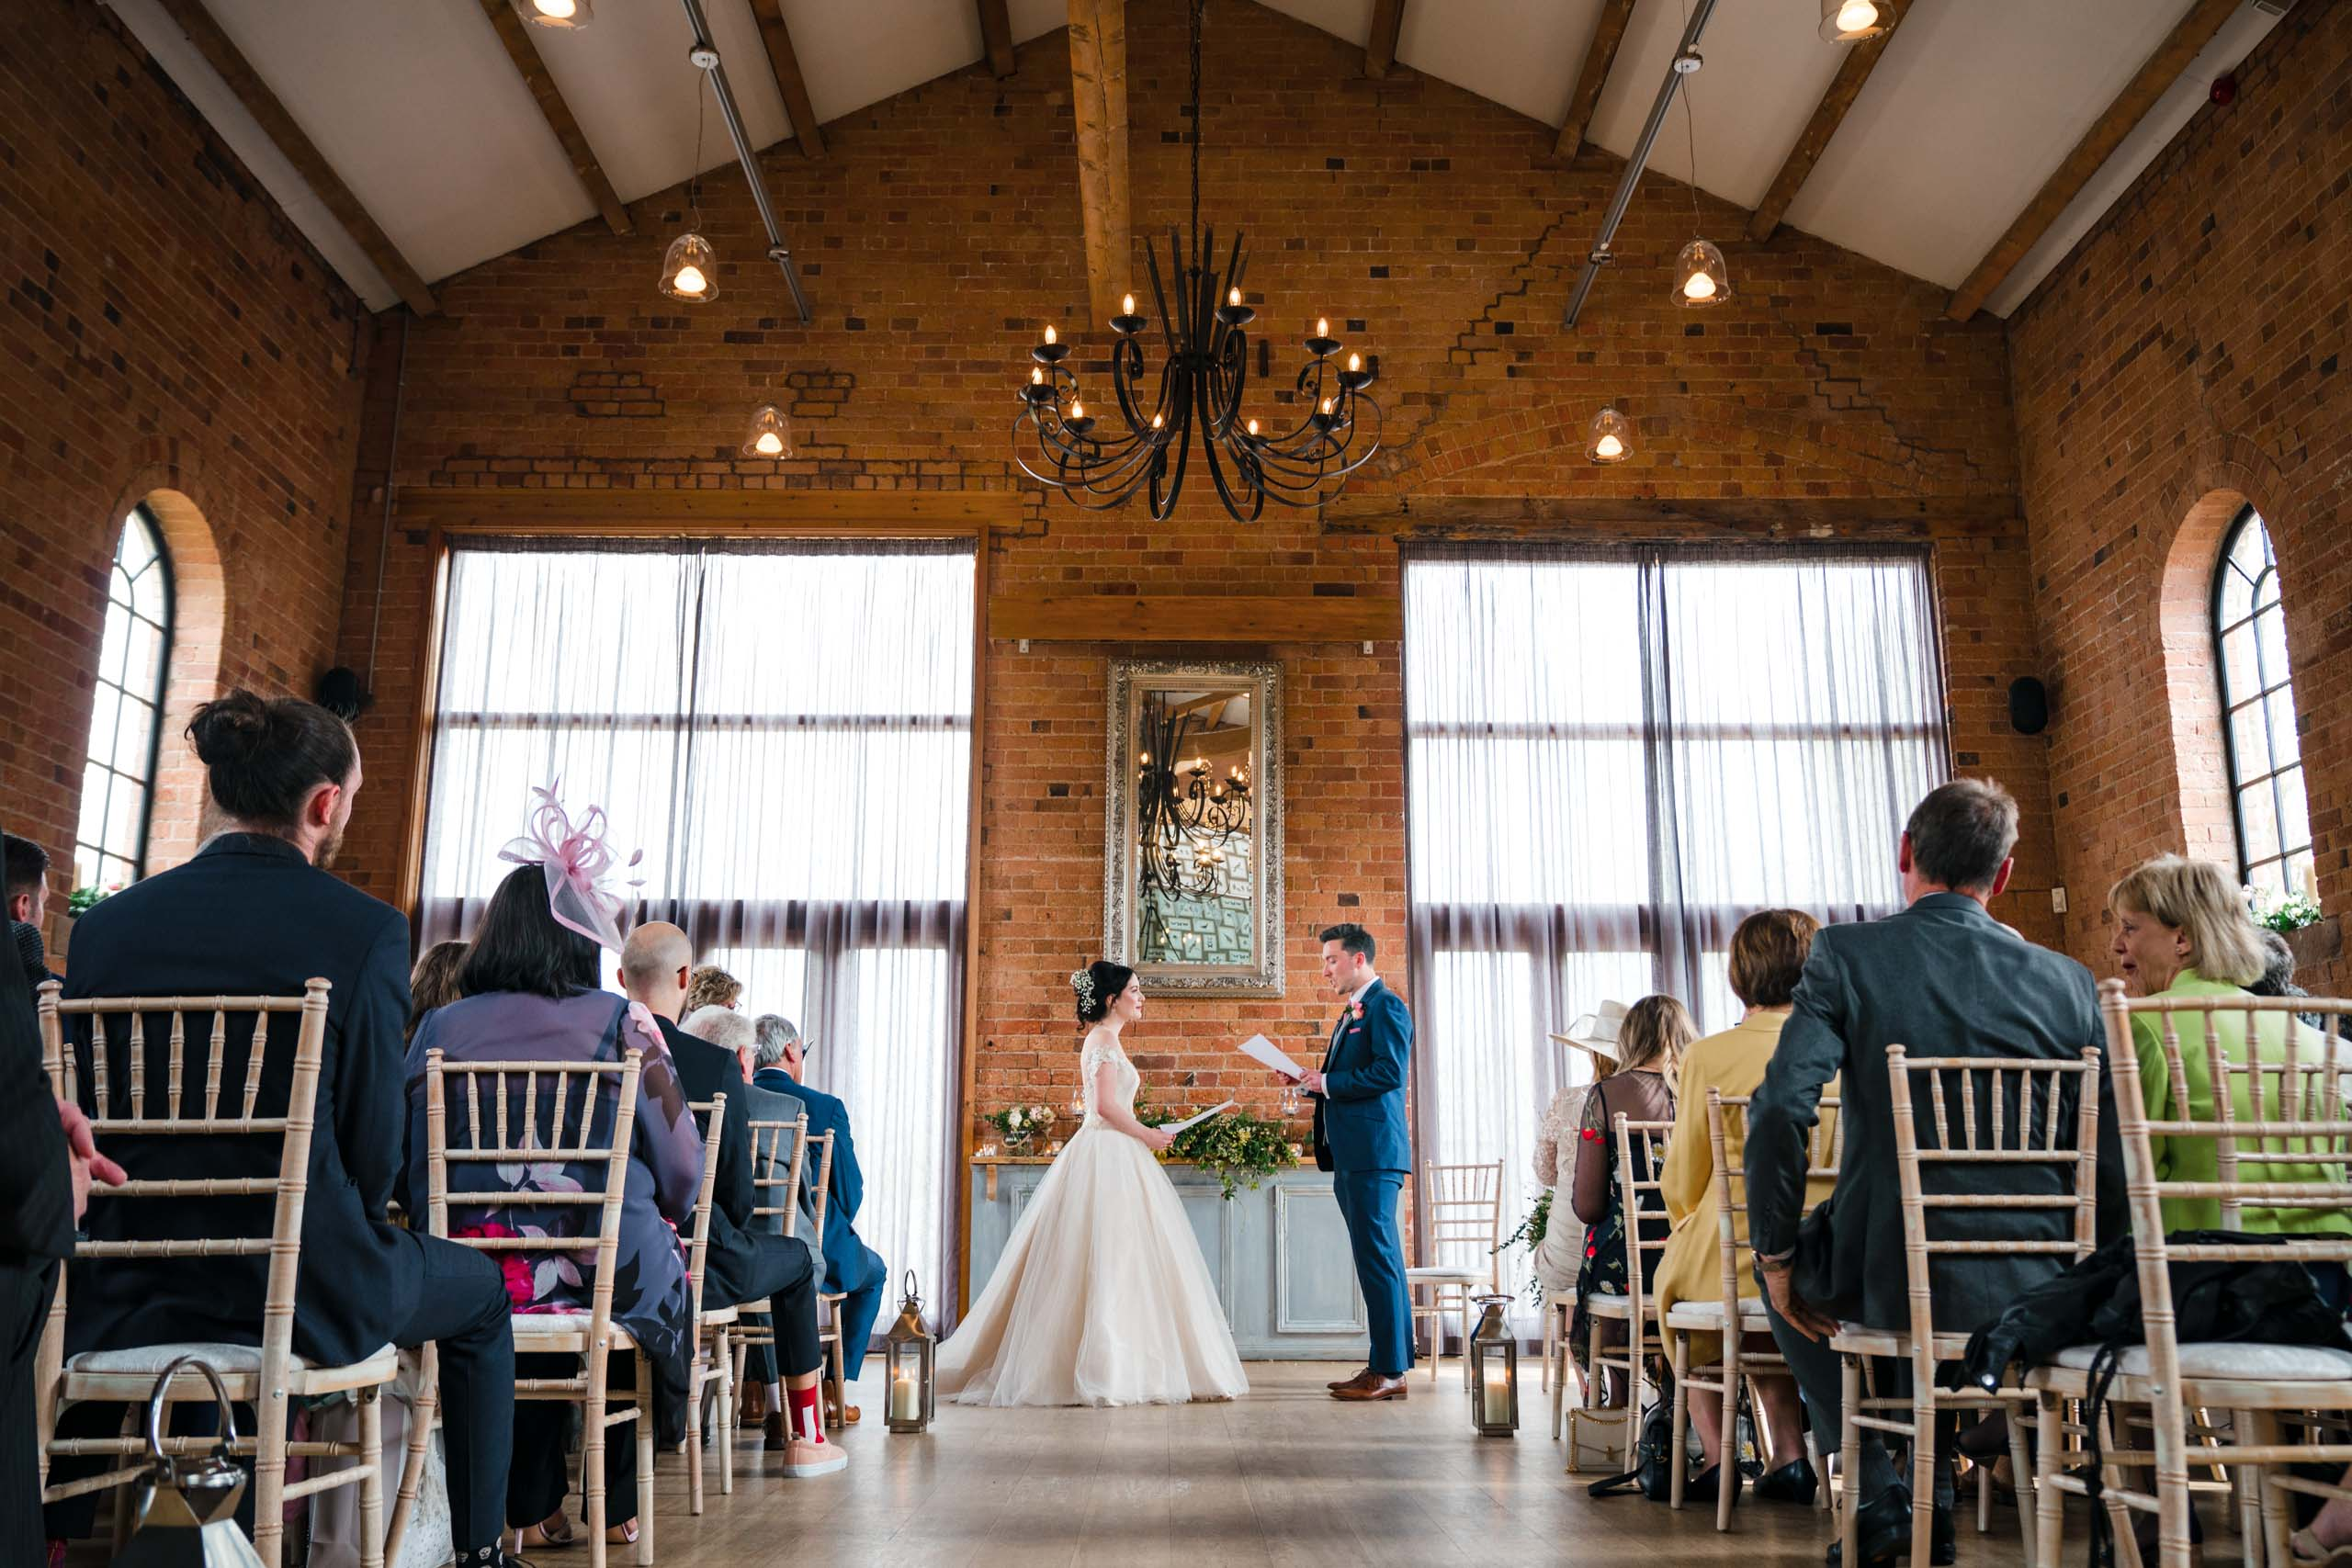 Wedding ceremony at Carriage Hall, Plumtree Nottingham